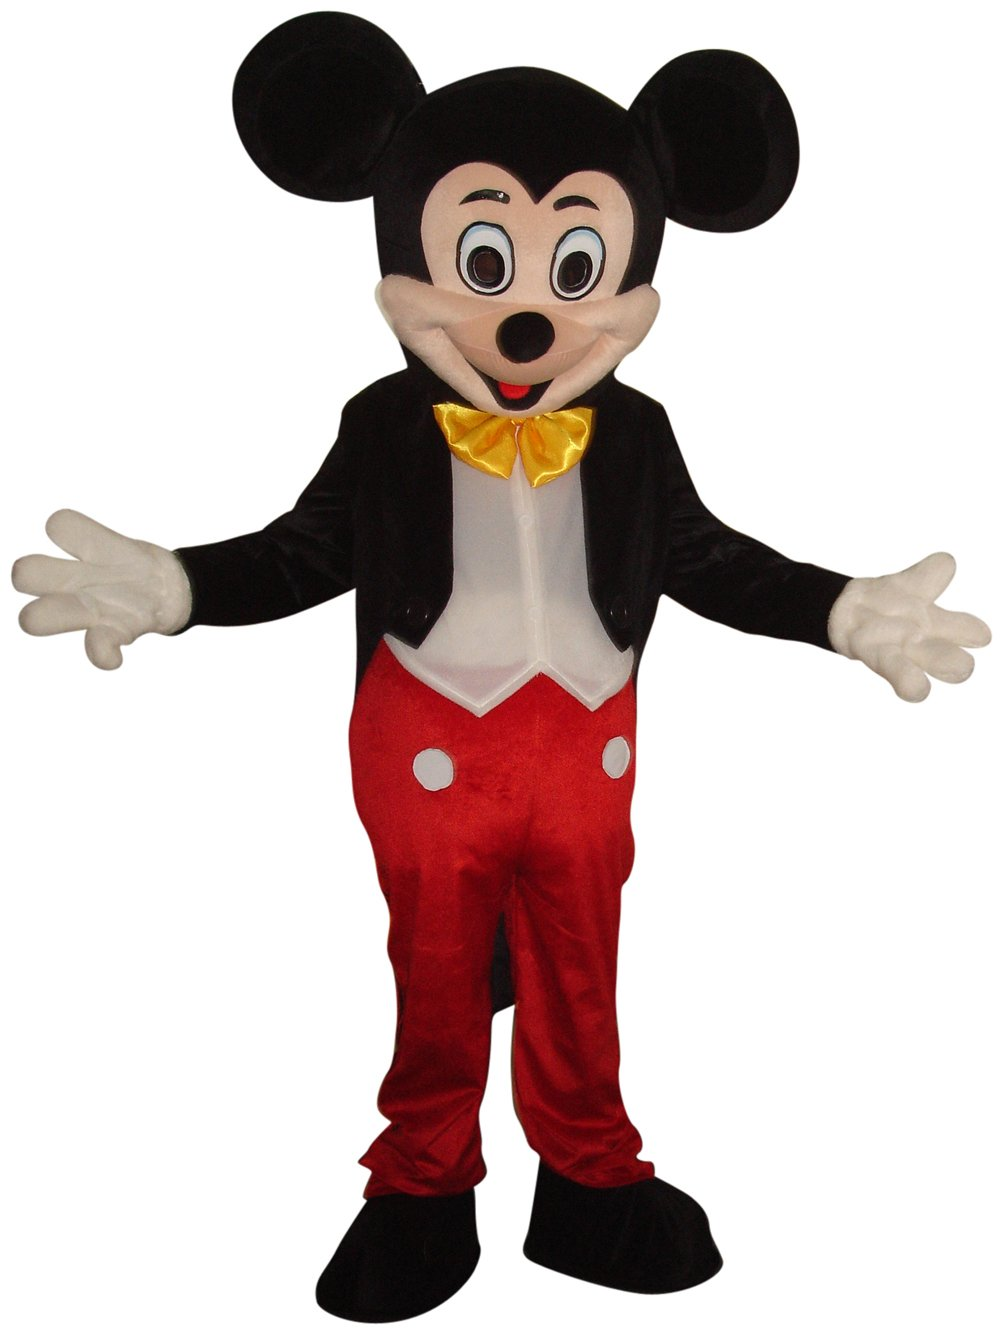 New Mickey Mouse Mascot Costume Adult Size Halloween Party Birthday by DealFashion